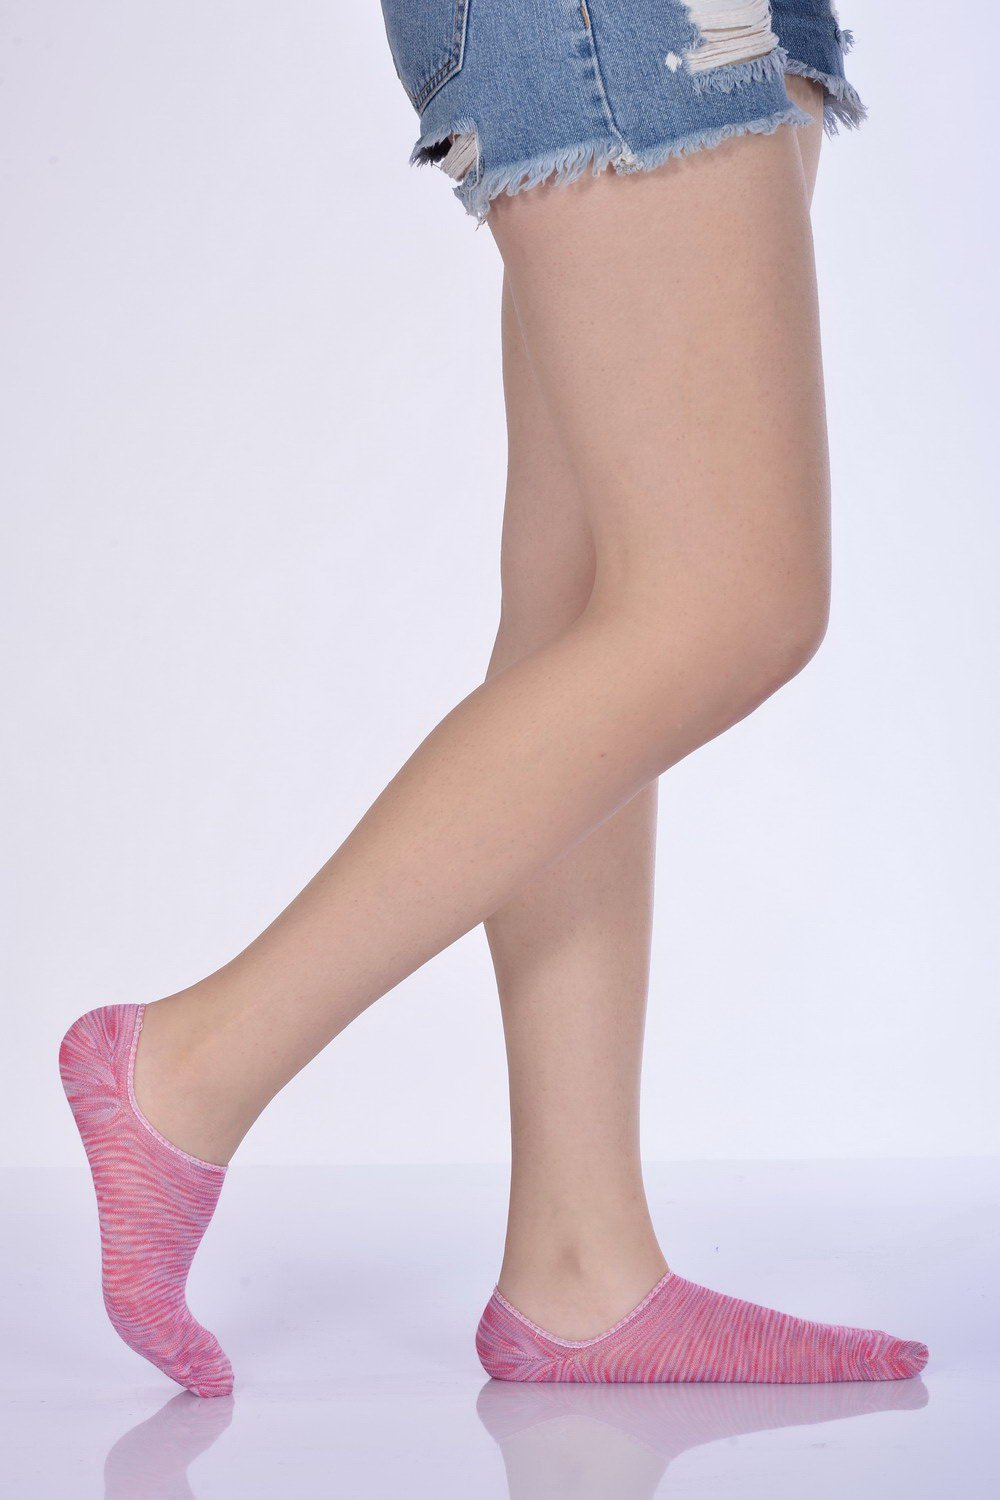 Women's Degrade Pattern Pink Babette Socks- 3 Pairs